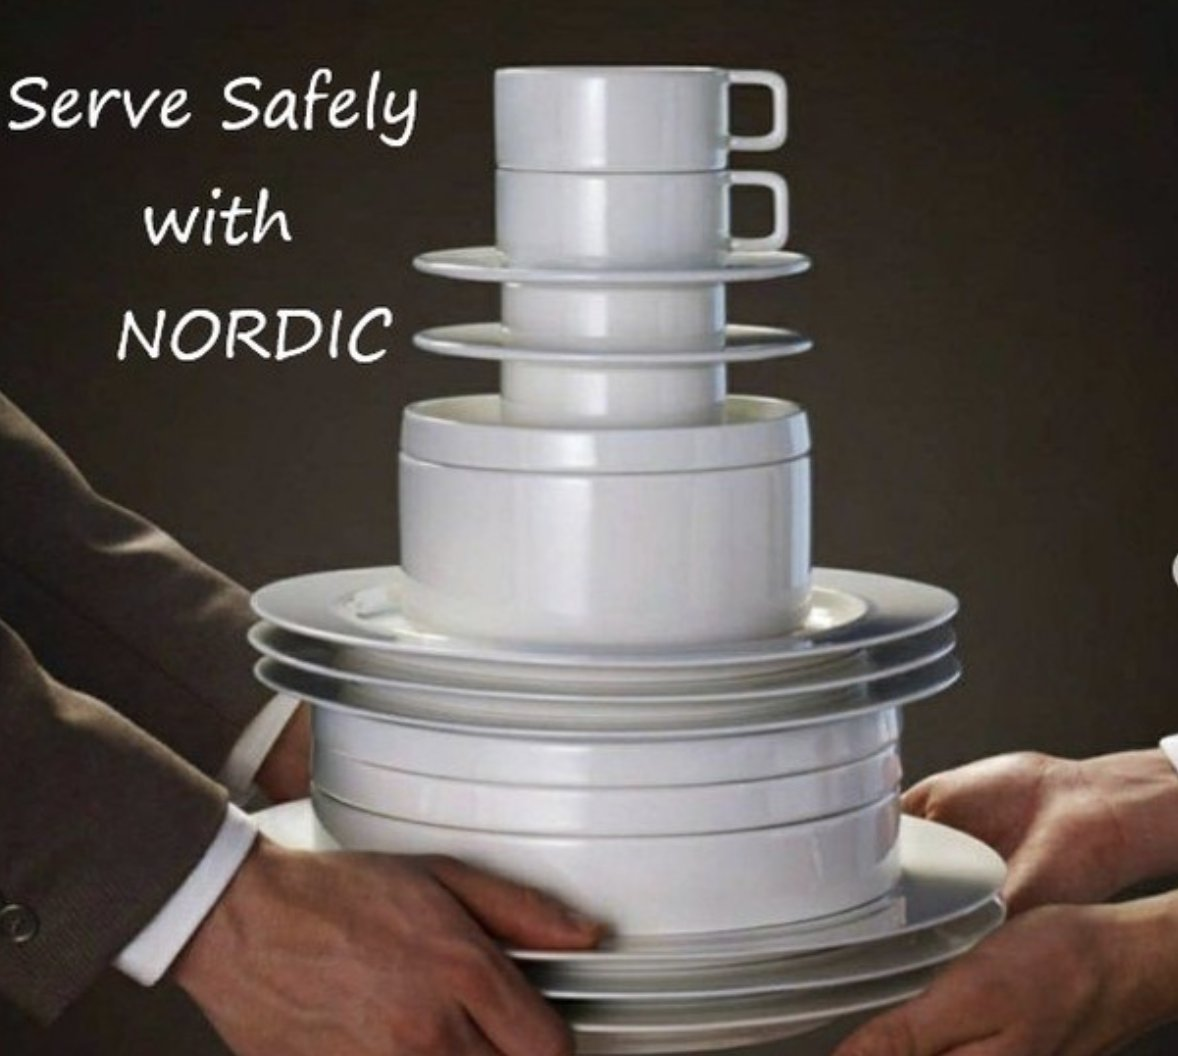 @RakPorcelainUSA's NORDIC has the functionality to adjust safely to the new #foodservice norm. 👌 #MakeSureItsRAK  #TabletopMatters #porcelain #dinnerware #foodstagram #gourmet #cheflife #inspire #restaurant #tweegram #hospitality